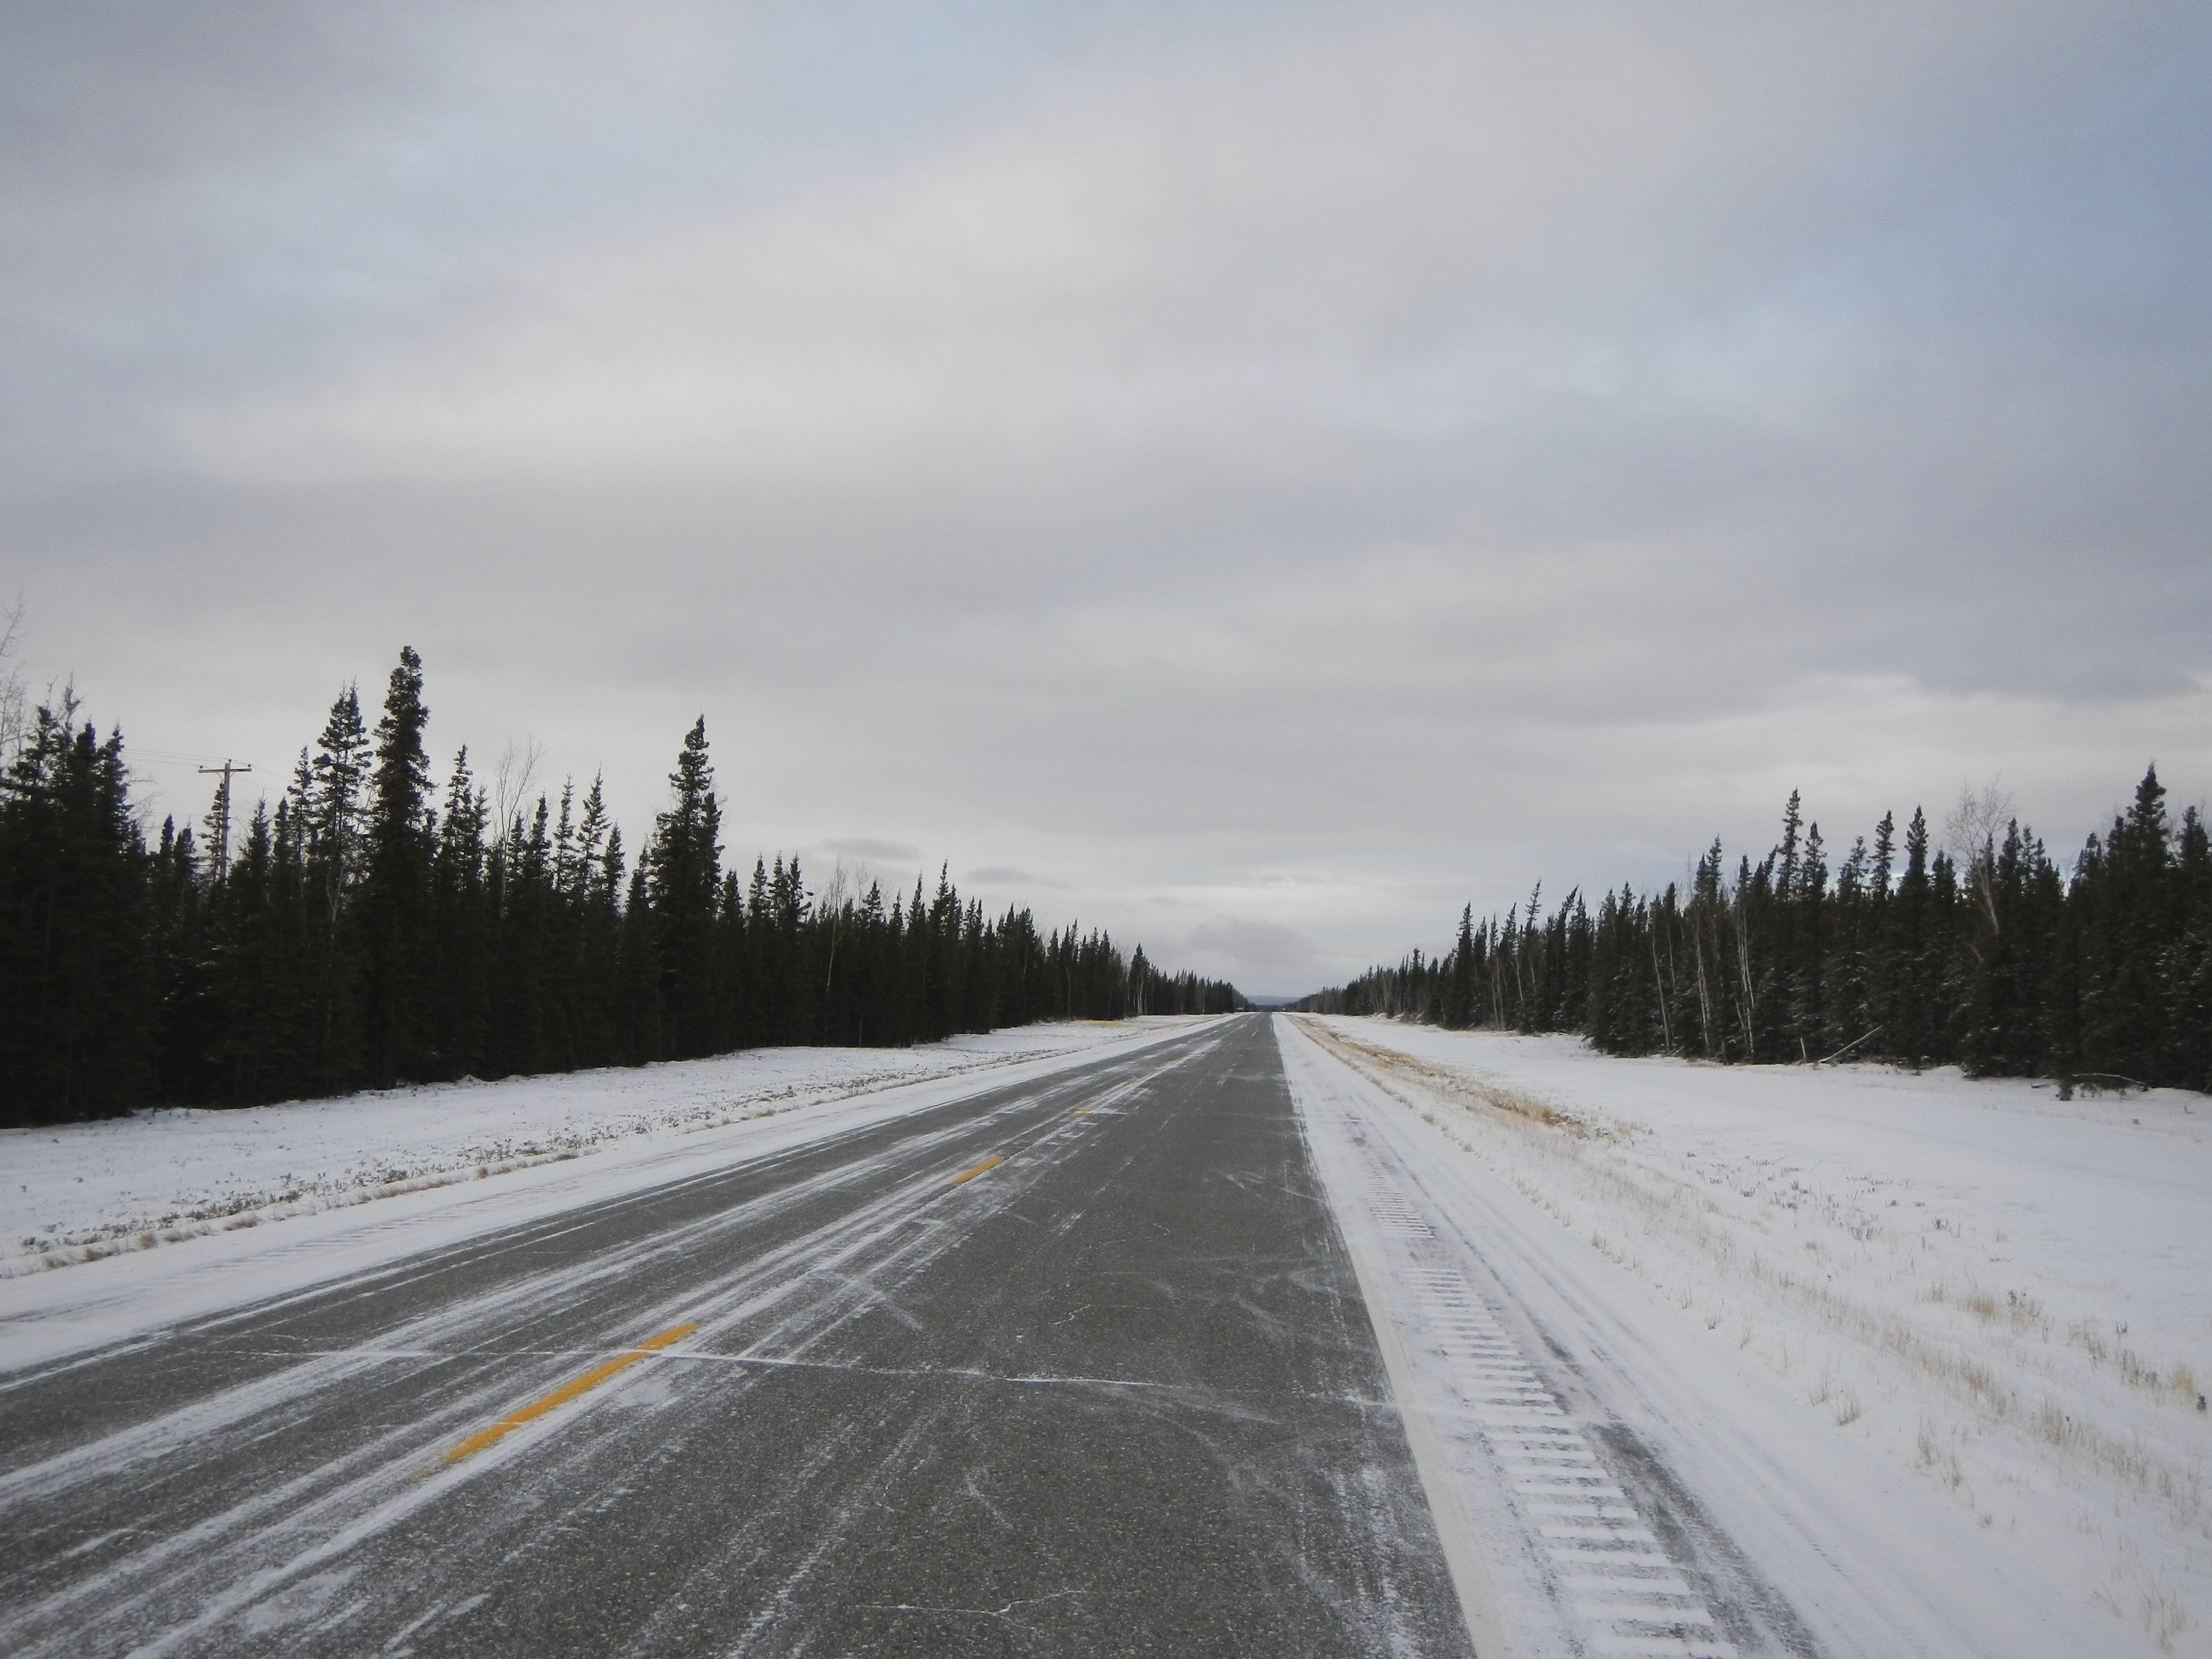 Discussion on this topic: How to Travel the Dalton Highway, how-to-travel-the-dalton-highway/